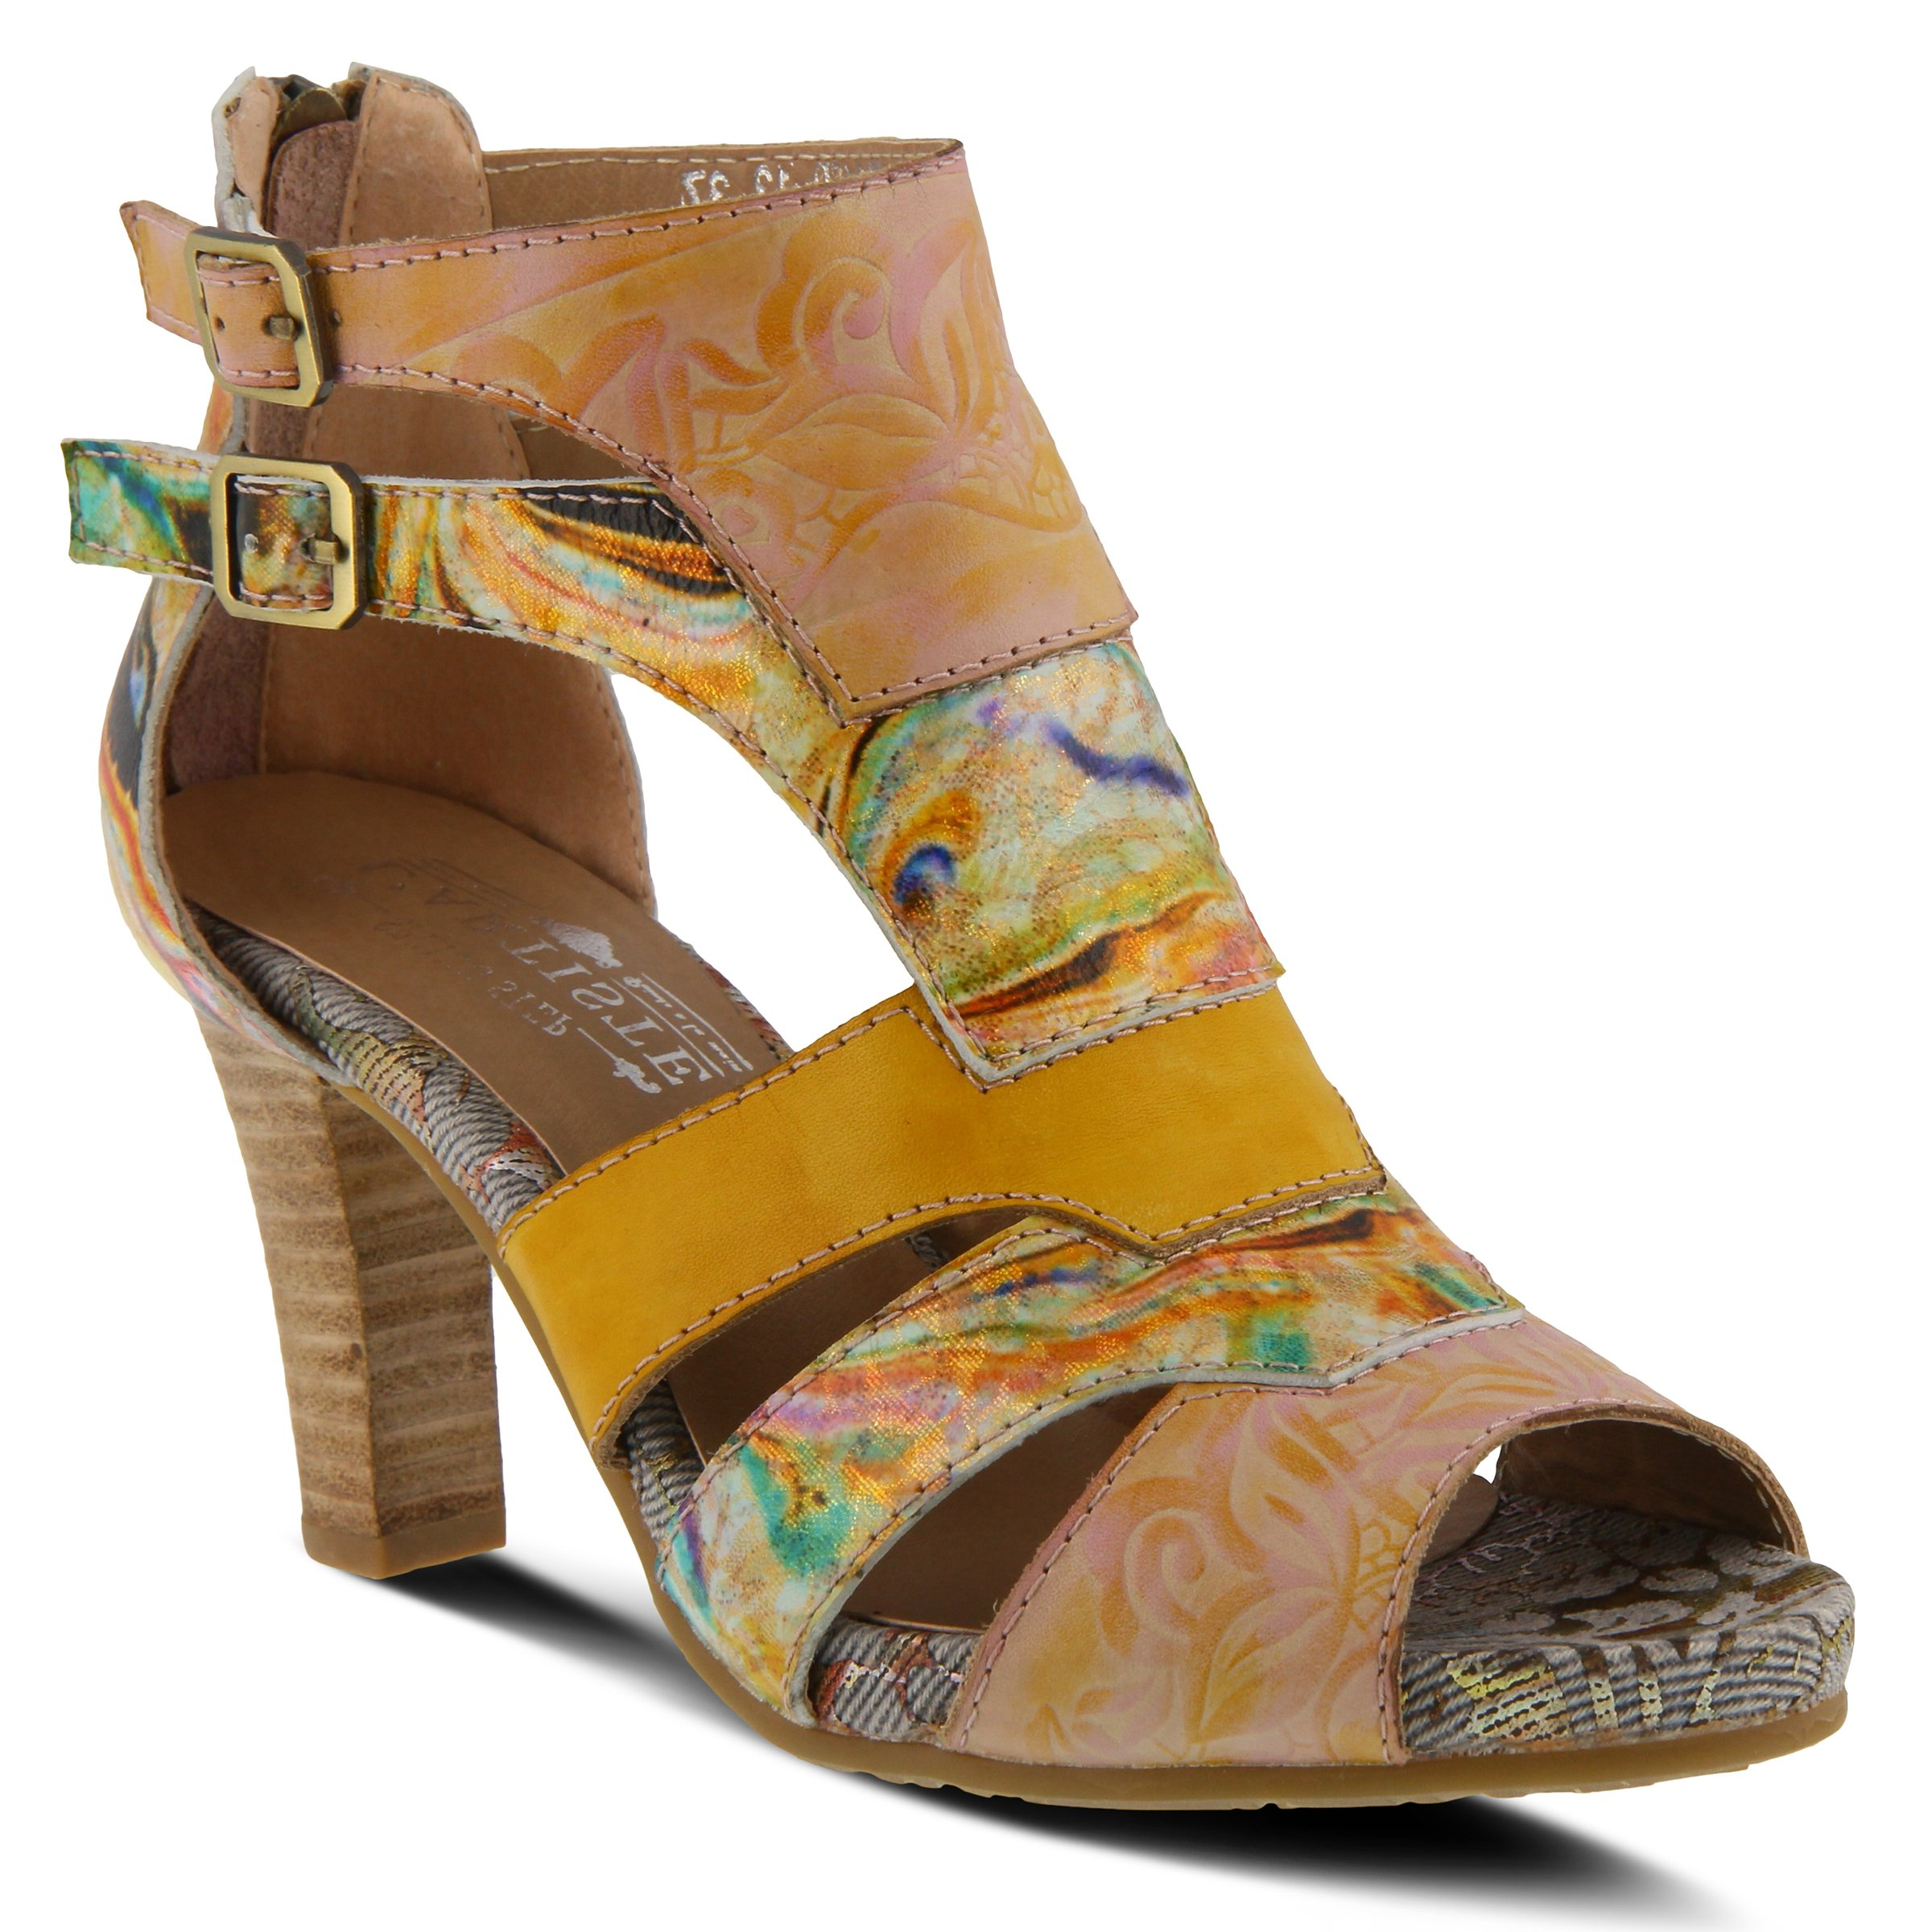 L'Artiste by Spring Step Women's Style Brooke Yellow Multi EURO Size 41 Leather Sandal